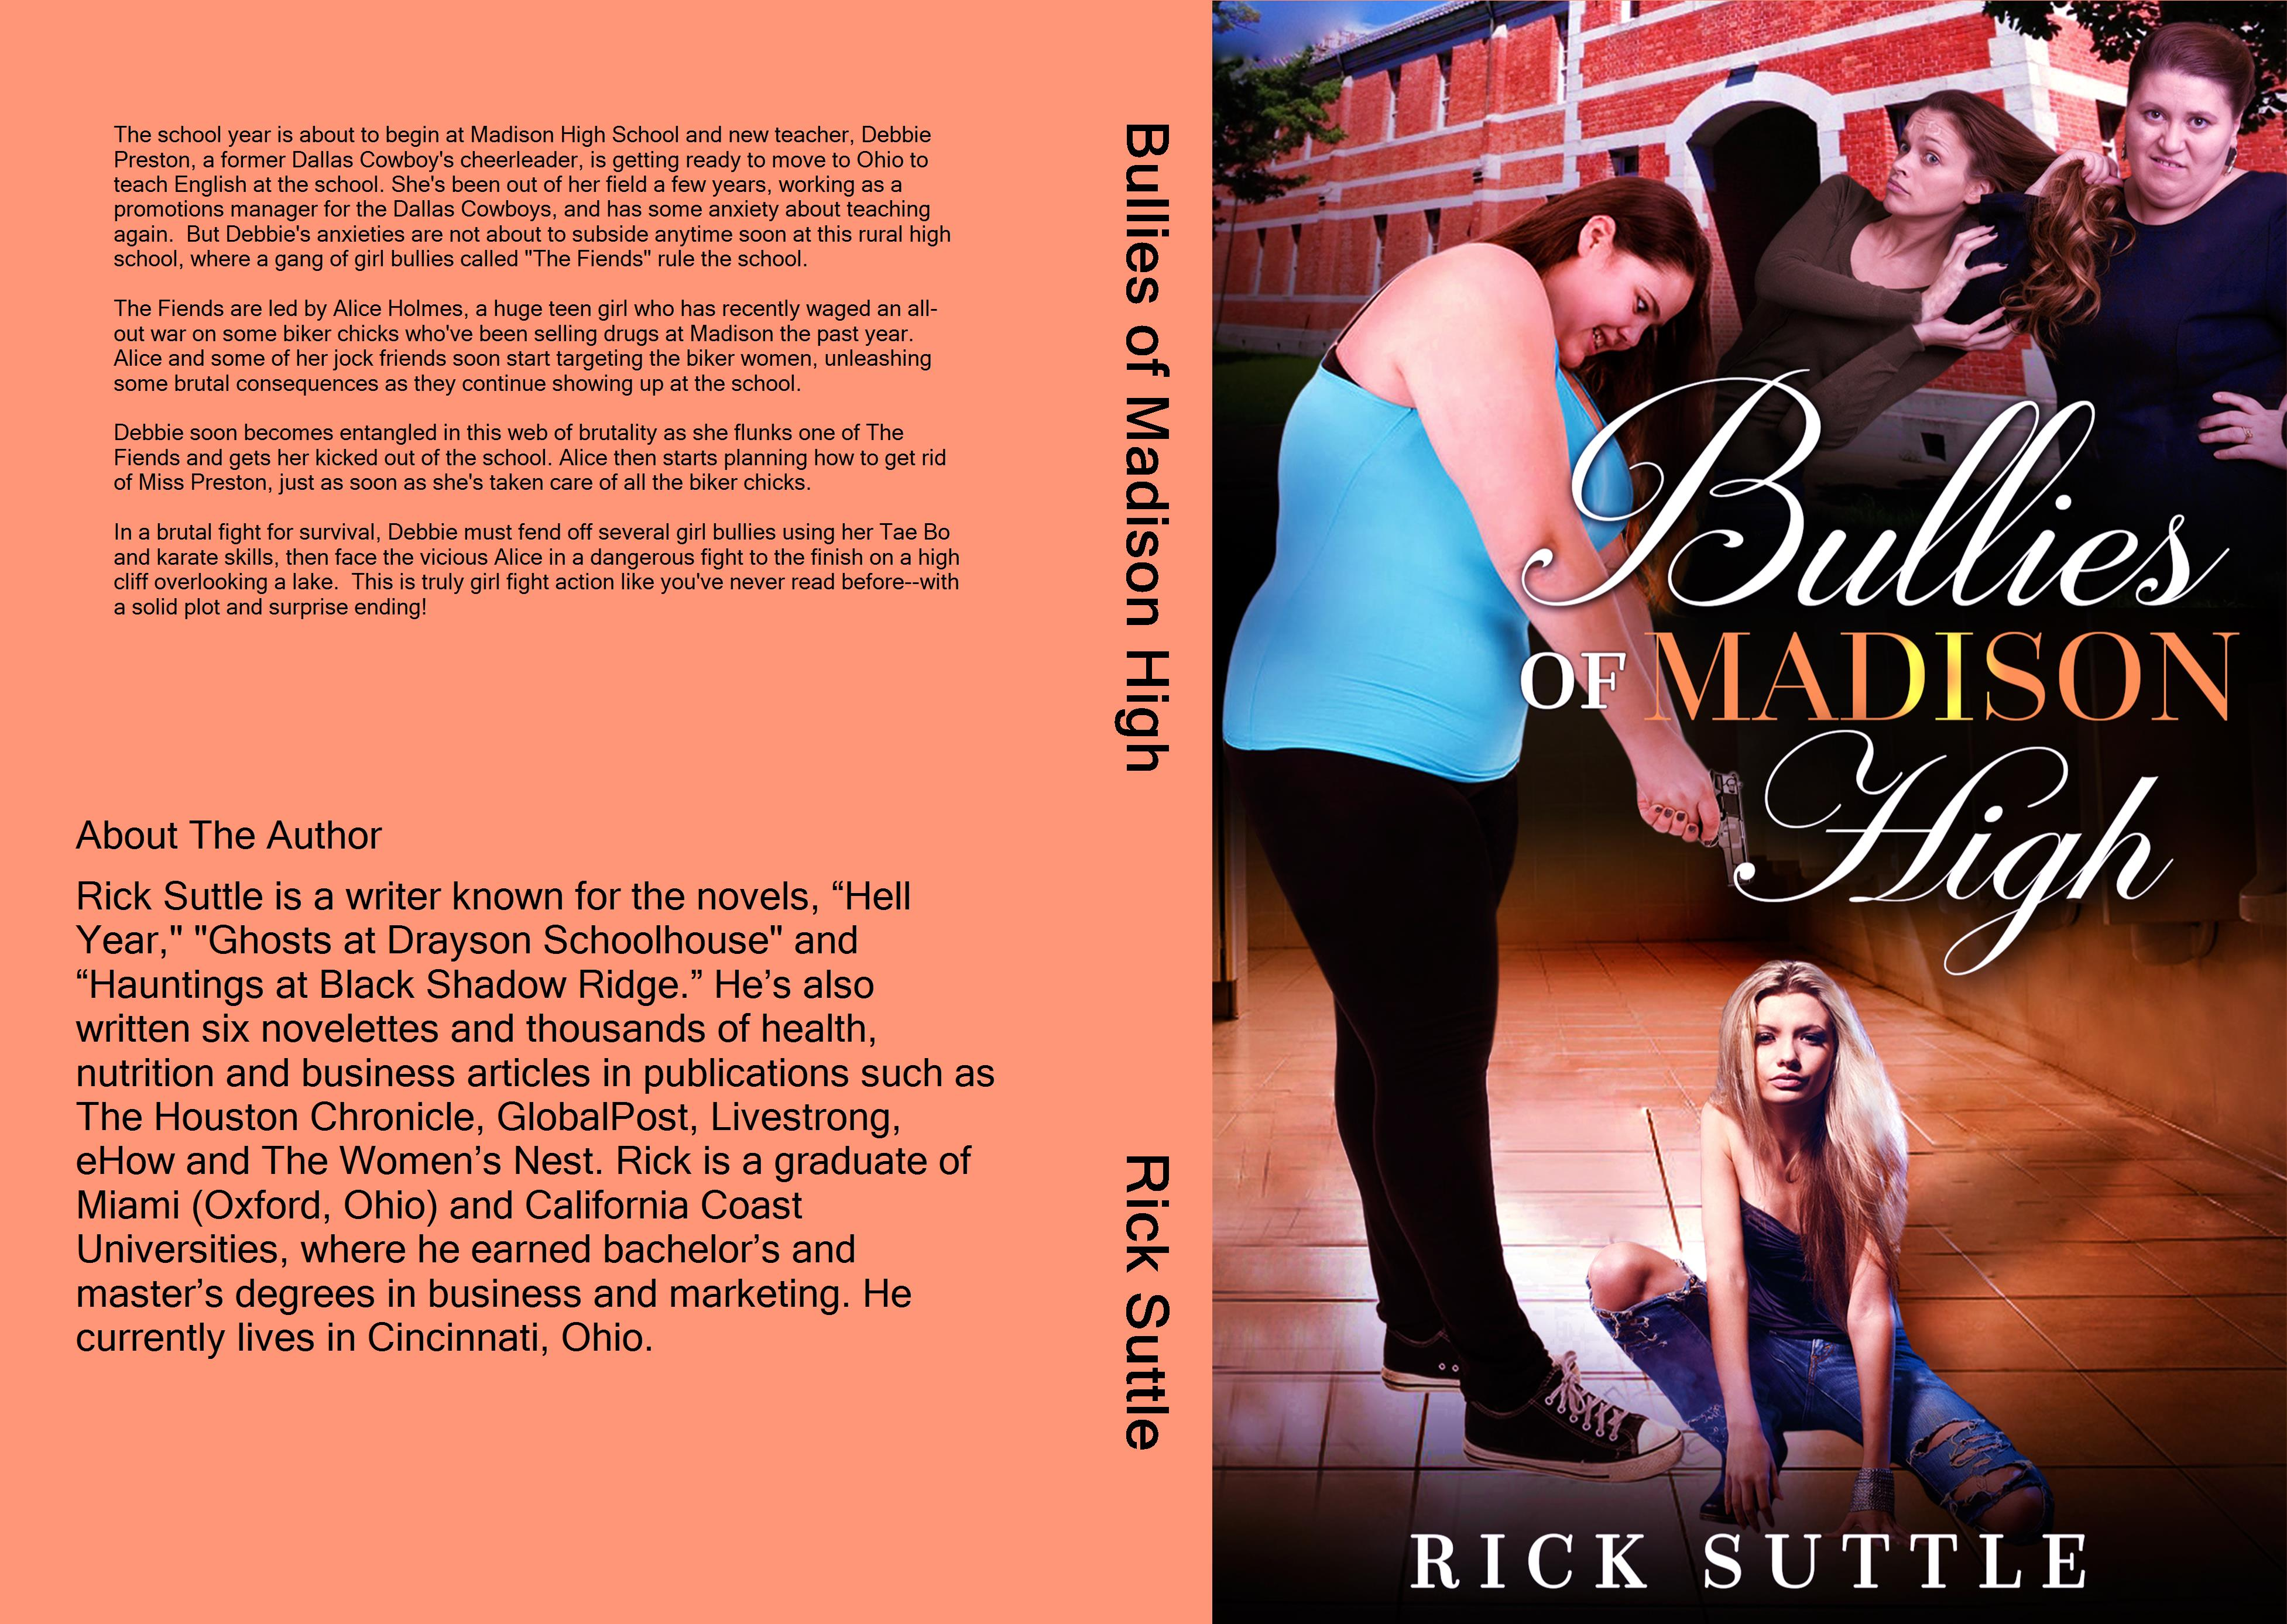 Bullies of Madison High cover image